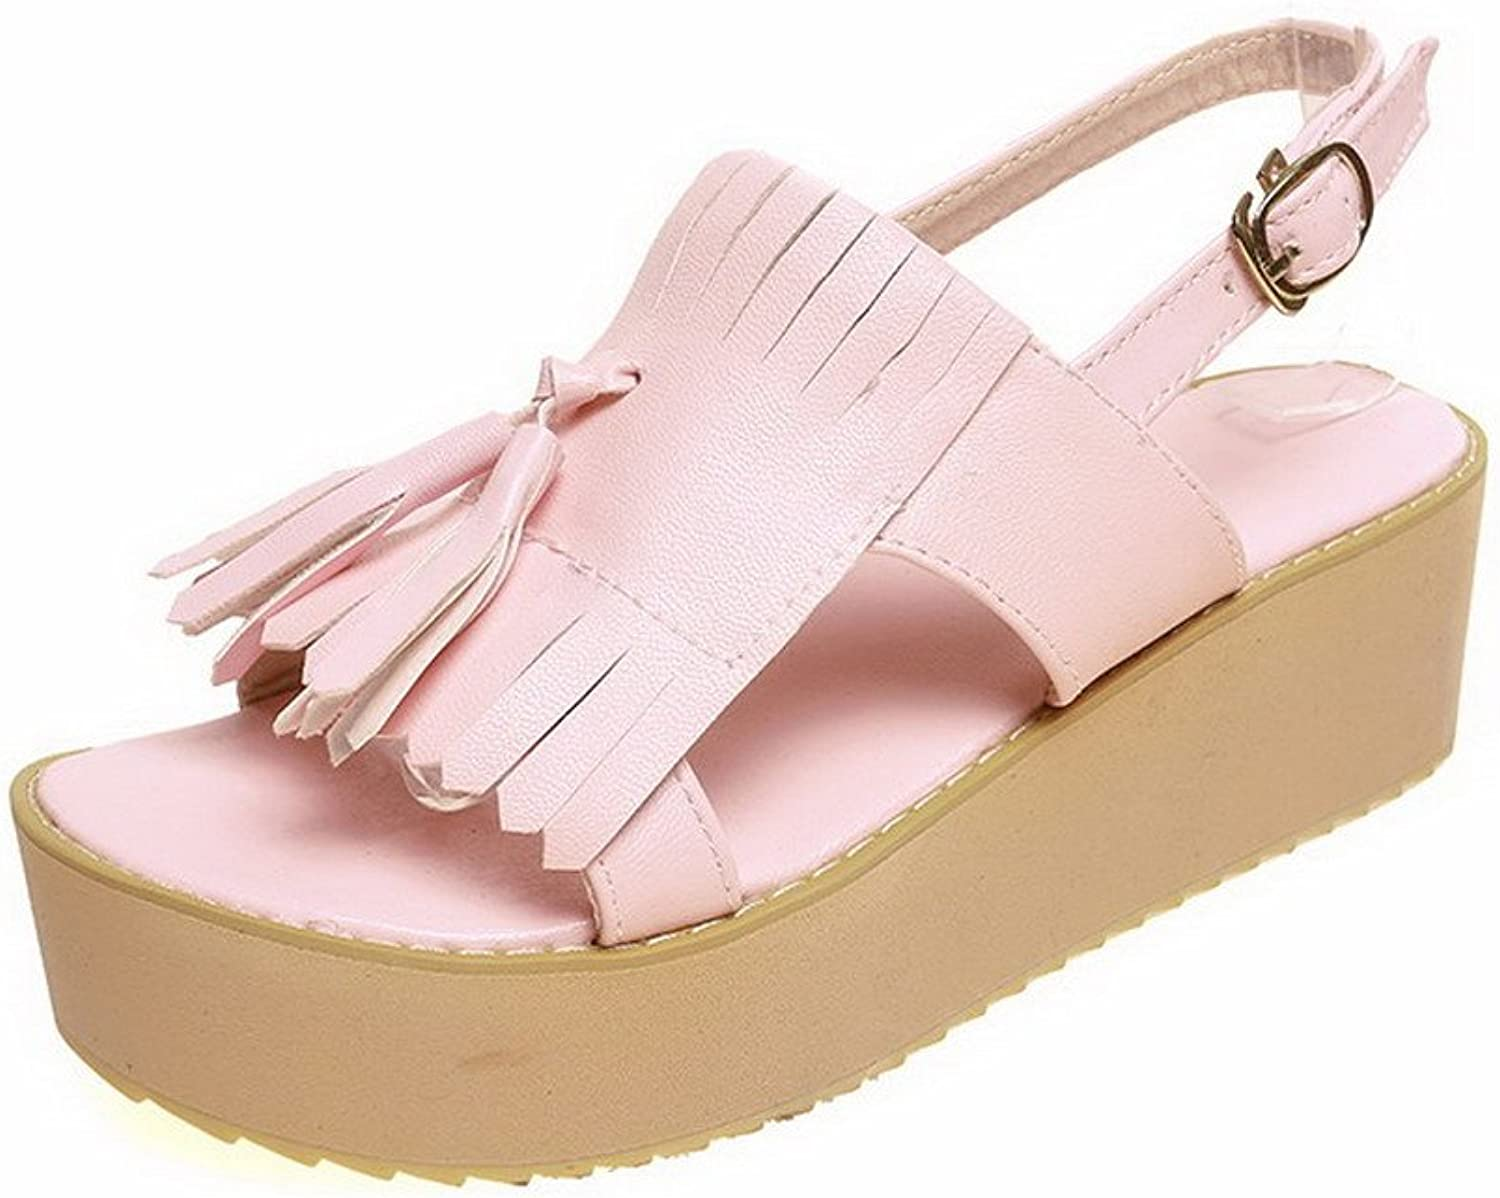 WeenFashion Women's Soft Material Buckle Open Toe Kitten-Heels Solid Flats-Sandals